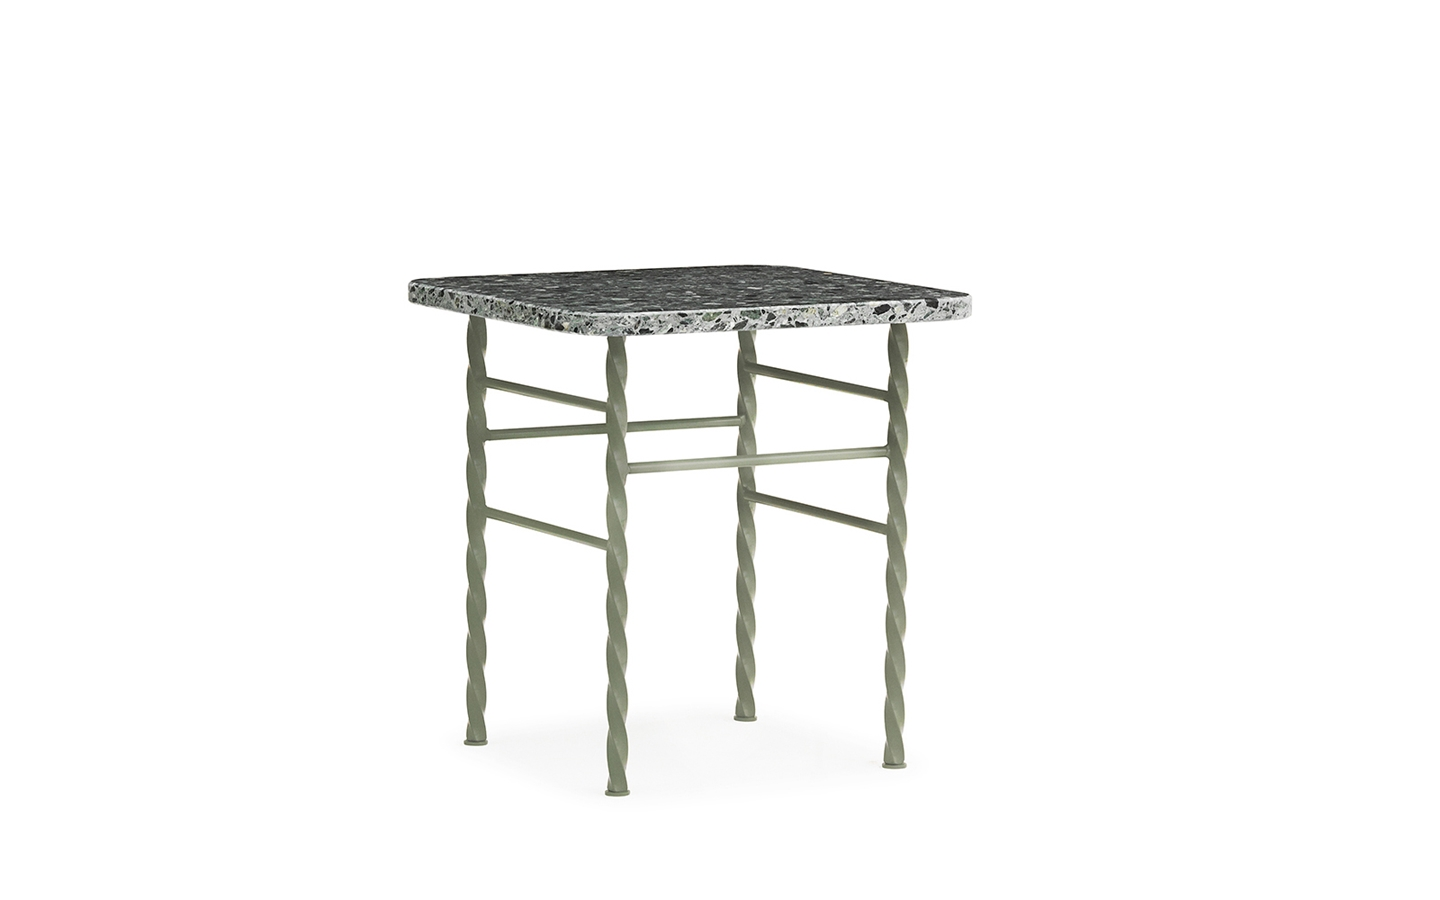 terra-simon-legald-table-blog-espritdesign-7